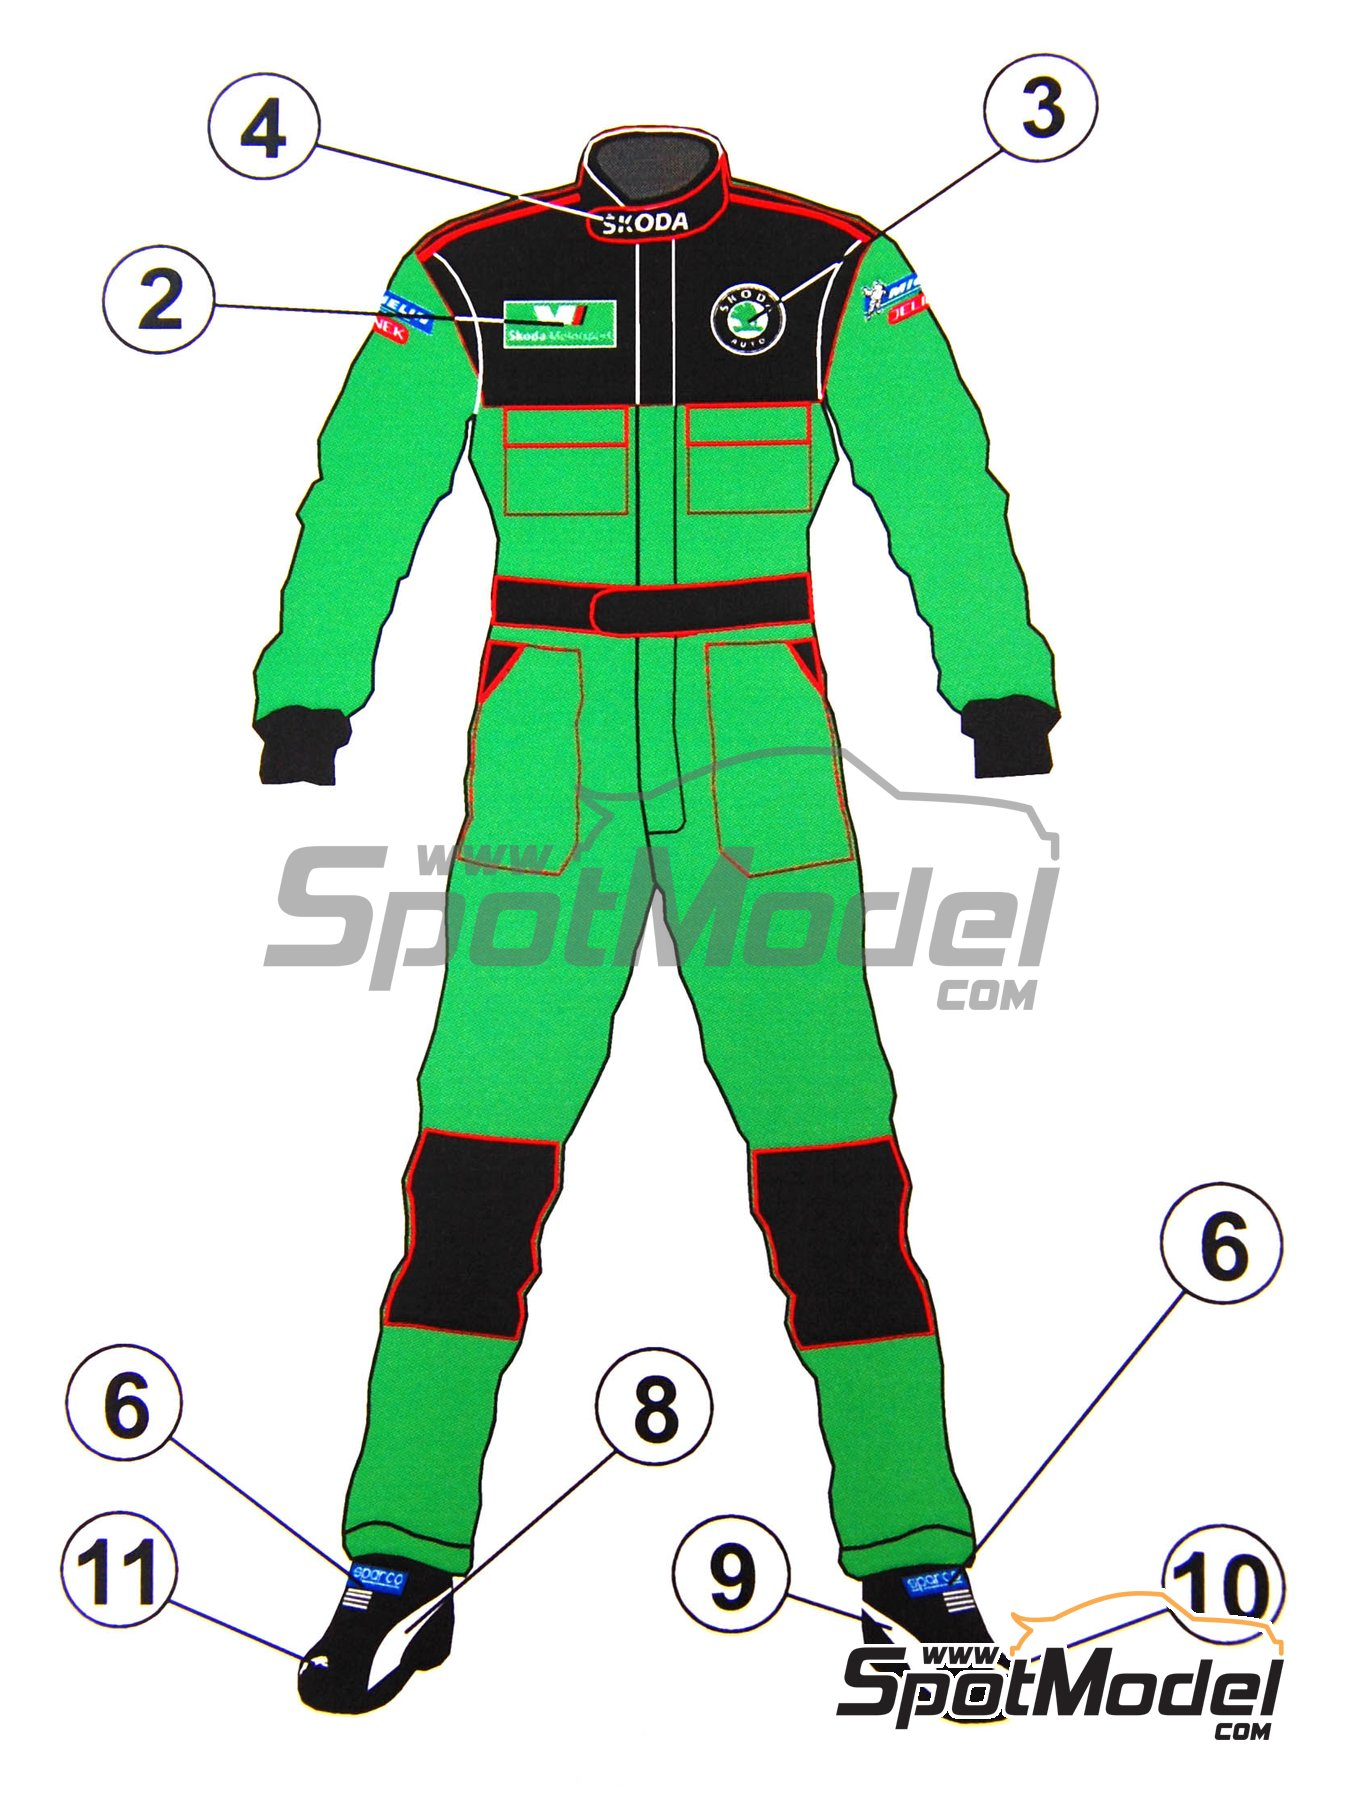 Skoda Motorsport Team Mechanic crew | Marking / livery in 1/24 scale manufactured by Reji Model (ref. REJI-091) image